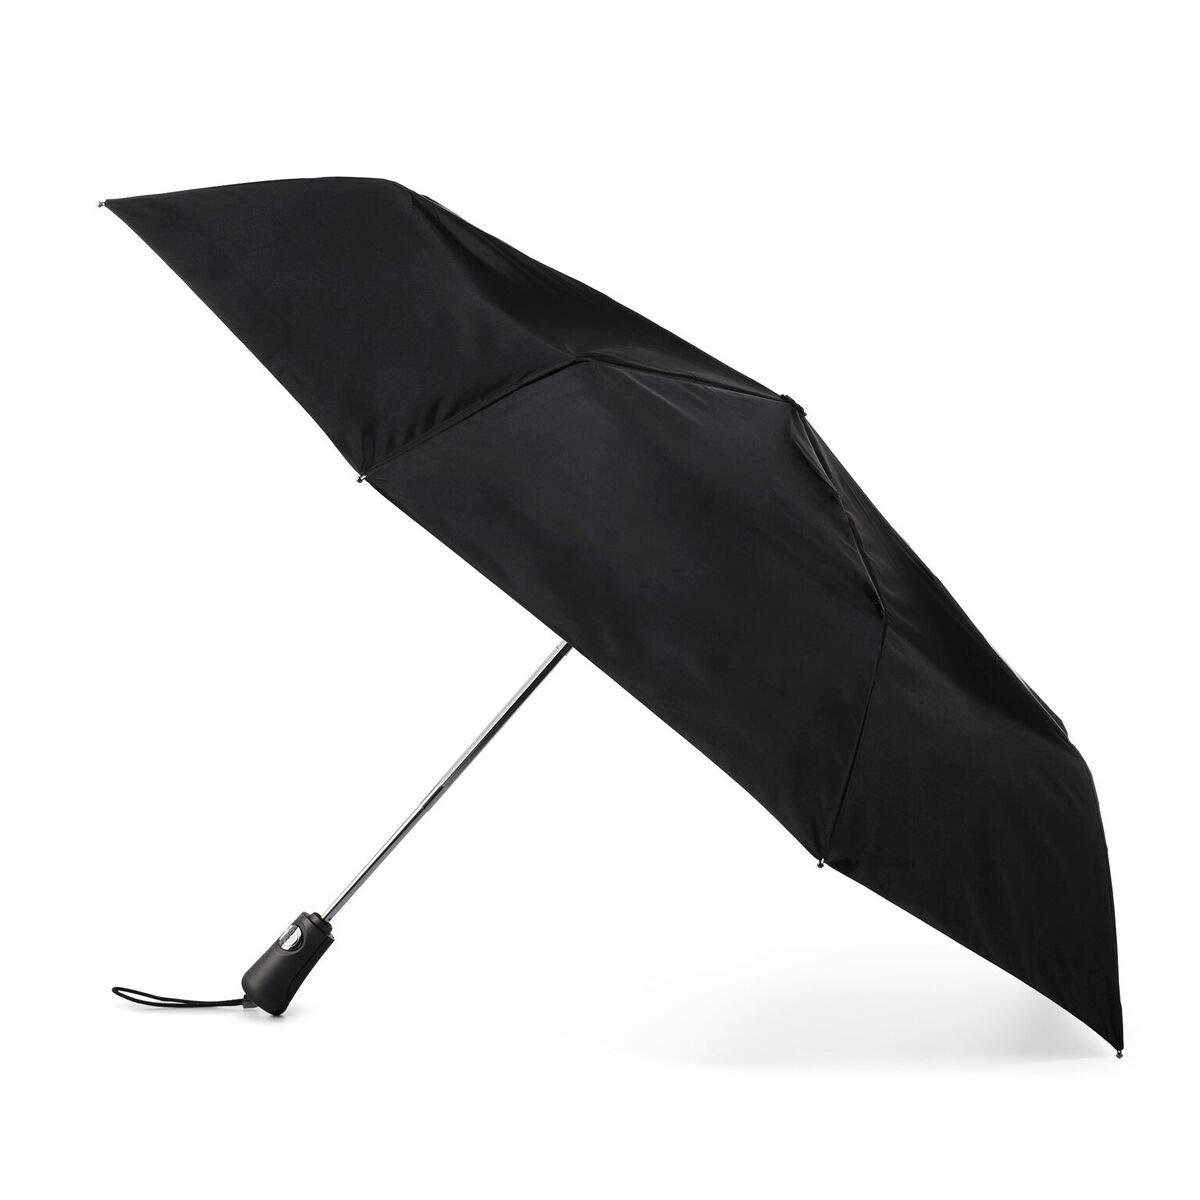 Titan Compact Travel Umbrella, Windproof, Waterproof, Auto Open/Close